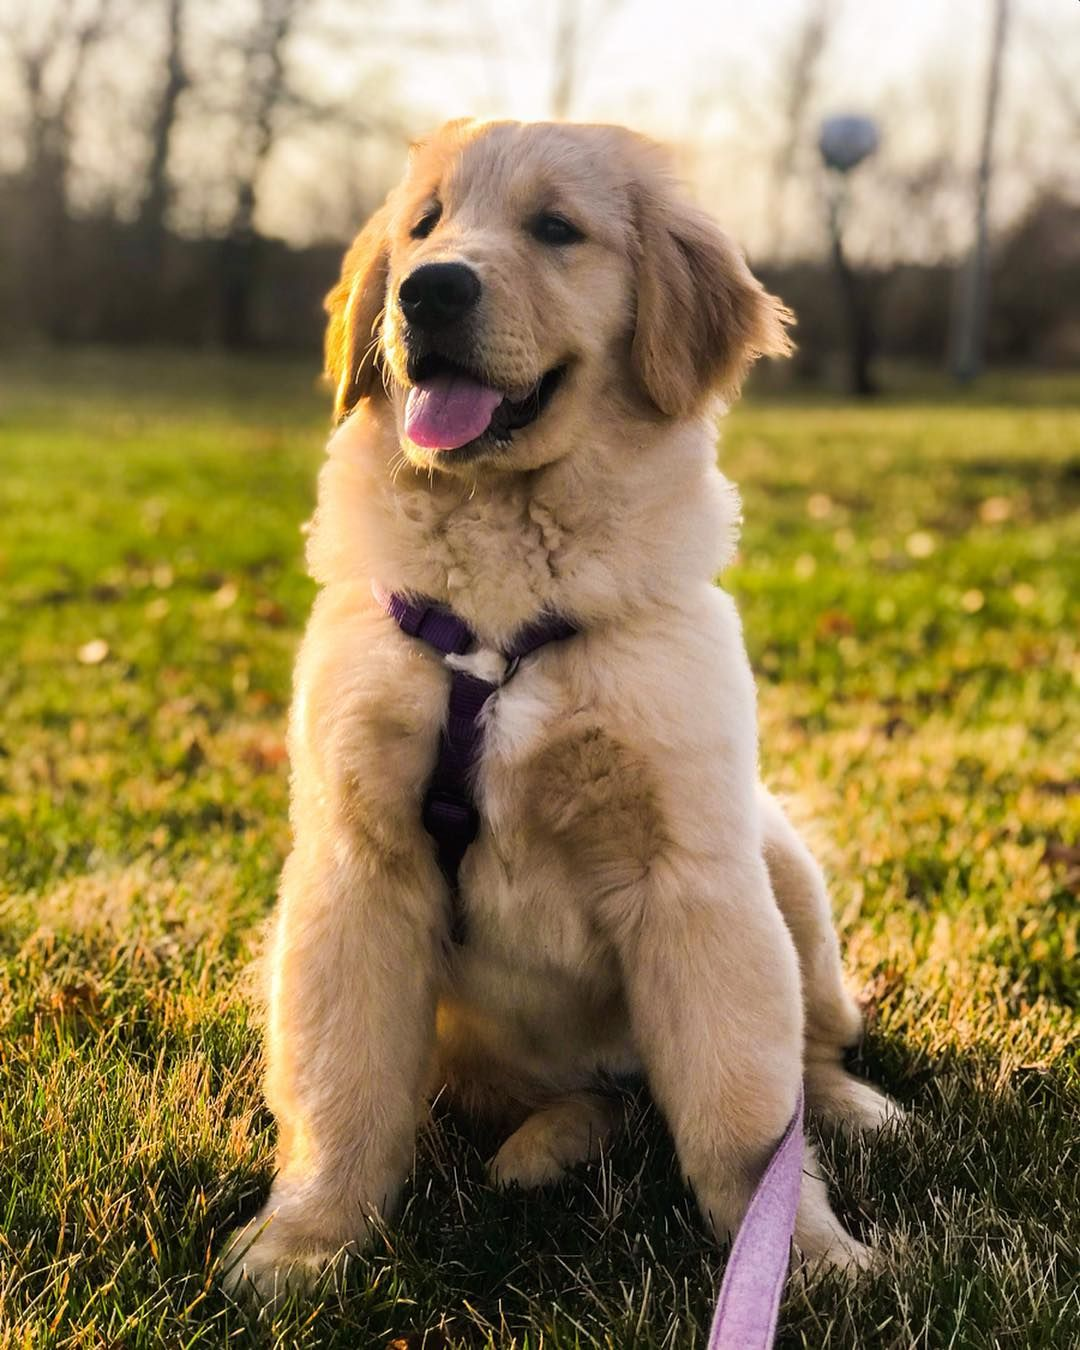 Pin By Allison Price On Cuties Puppies Golden Retriever Puppy Dogs Golden Retriever